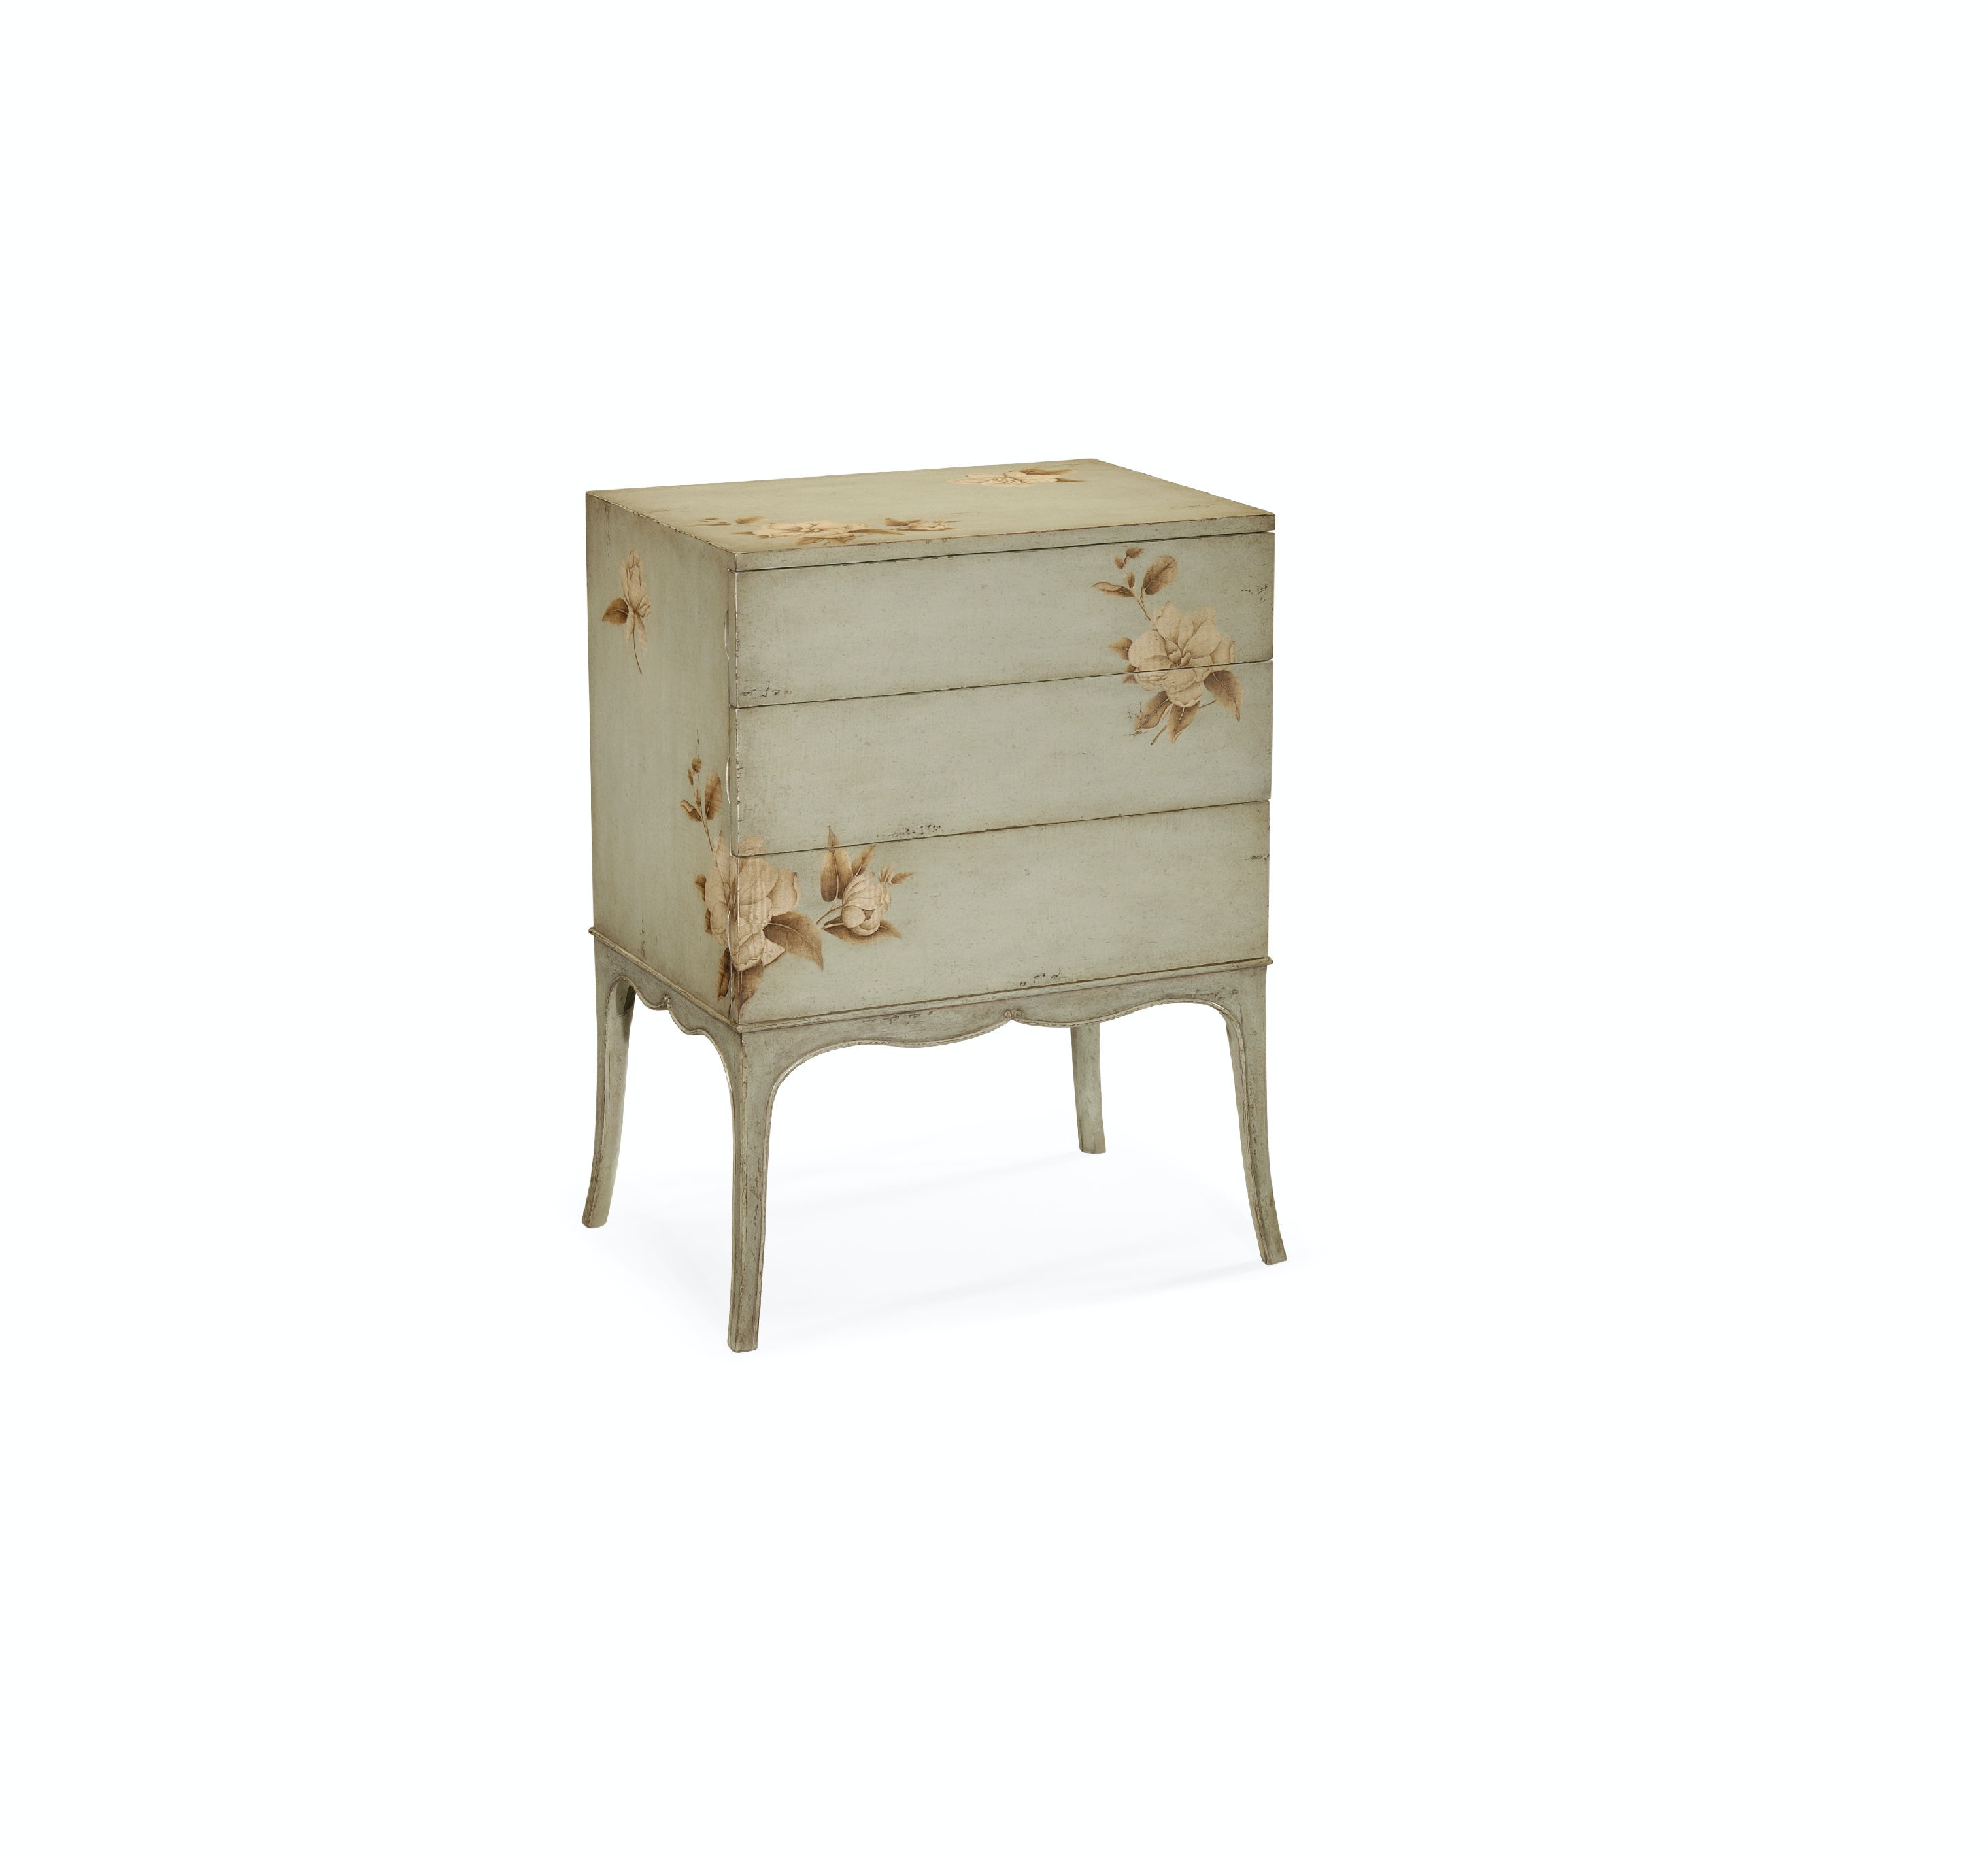 Jonathan Charles Short Foral Painted Chest On Stand